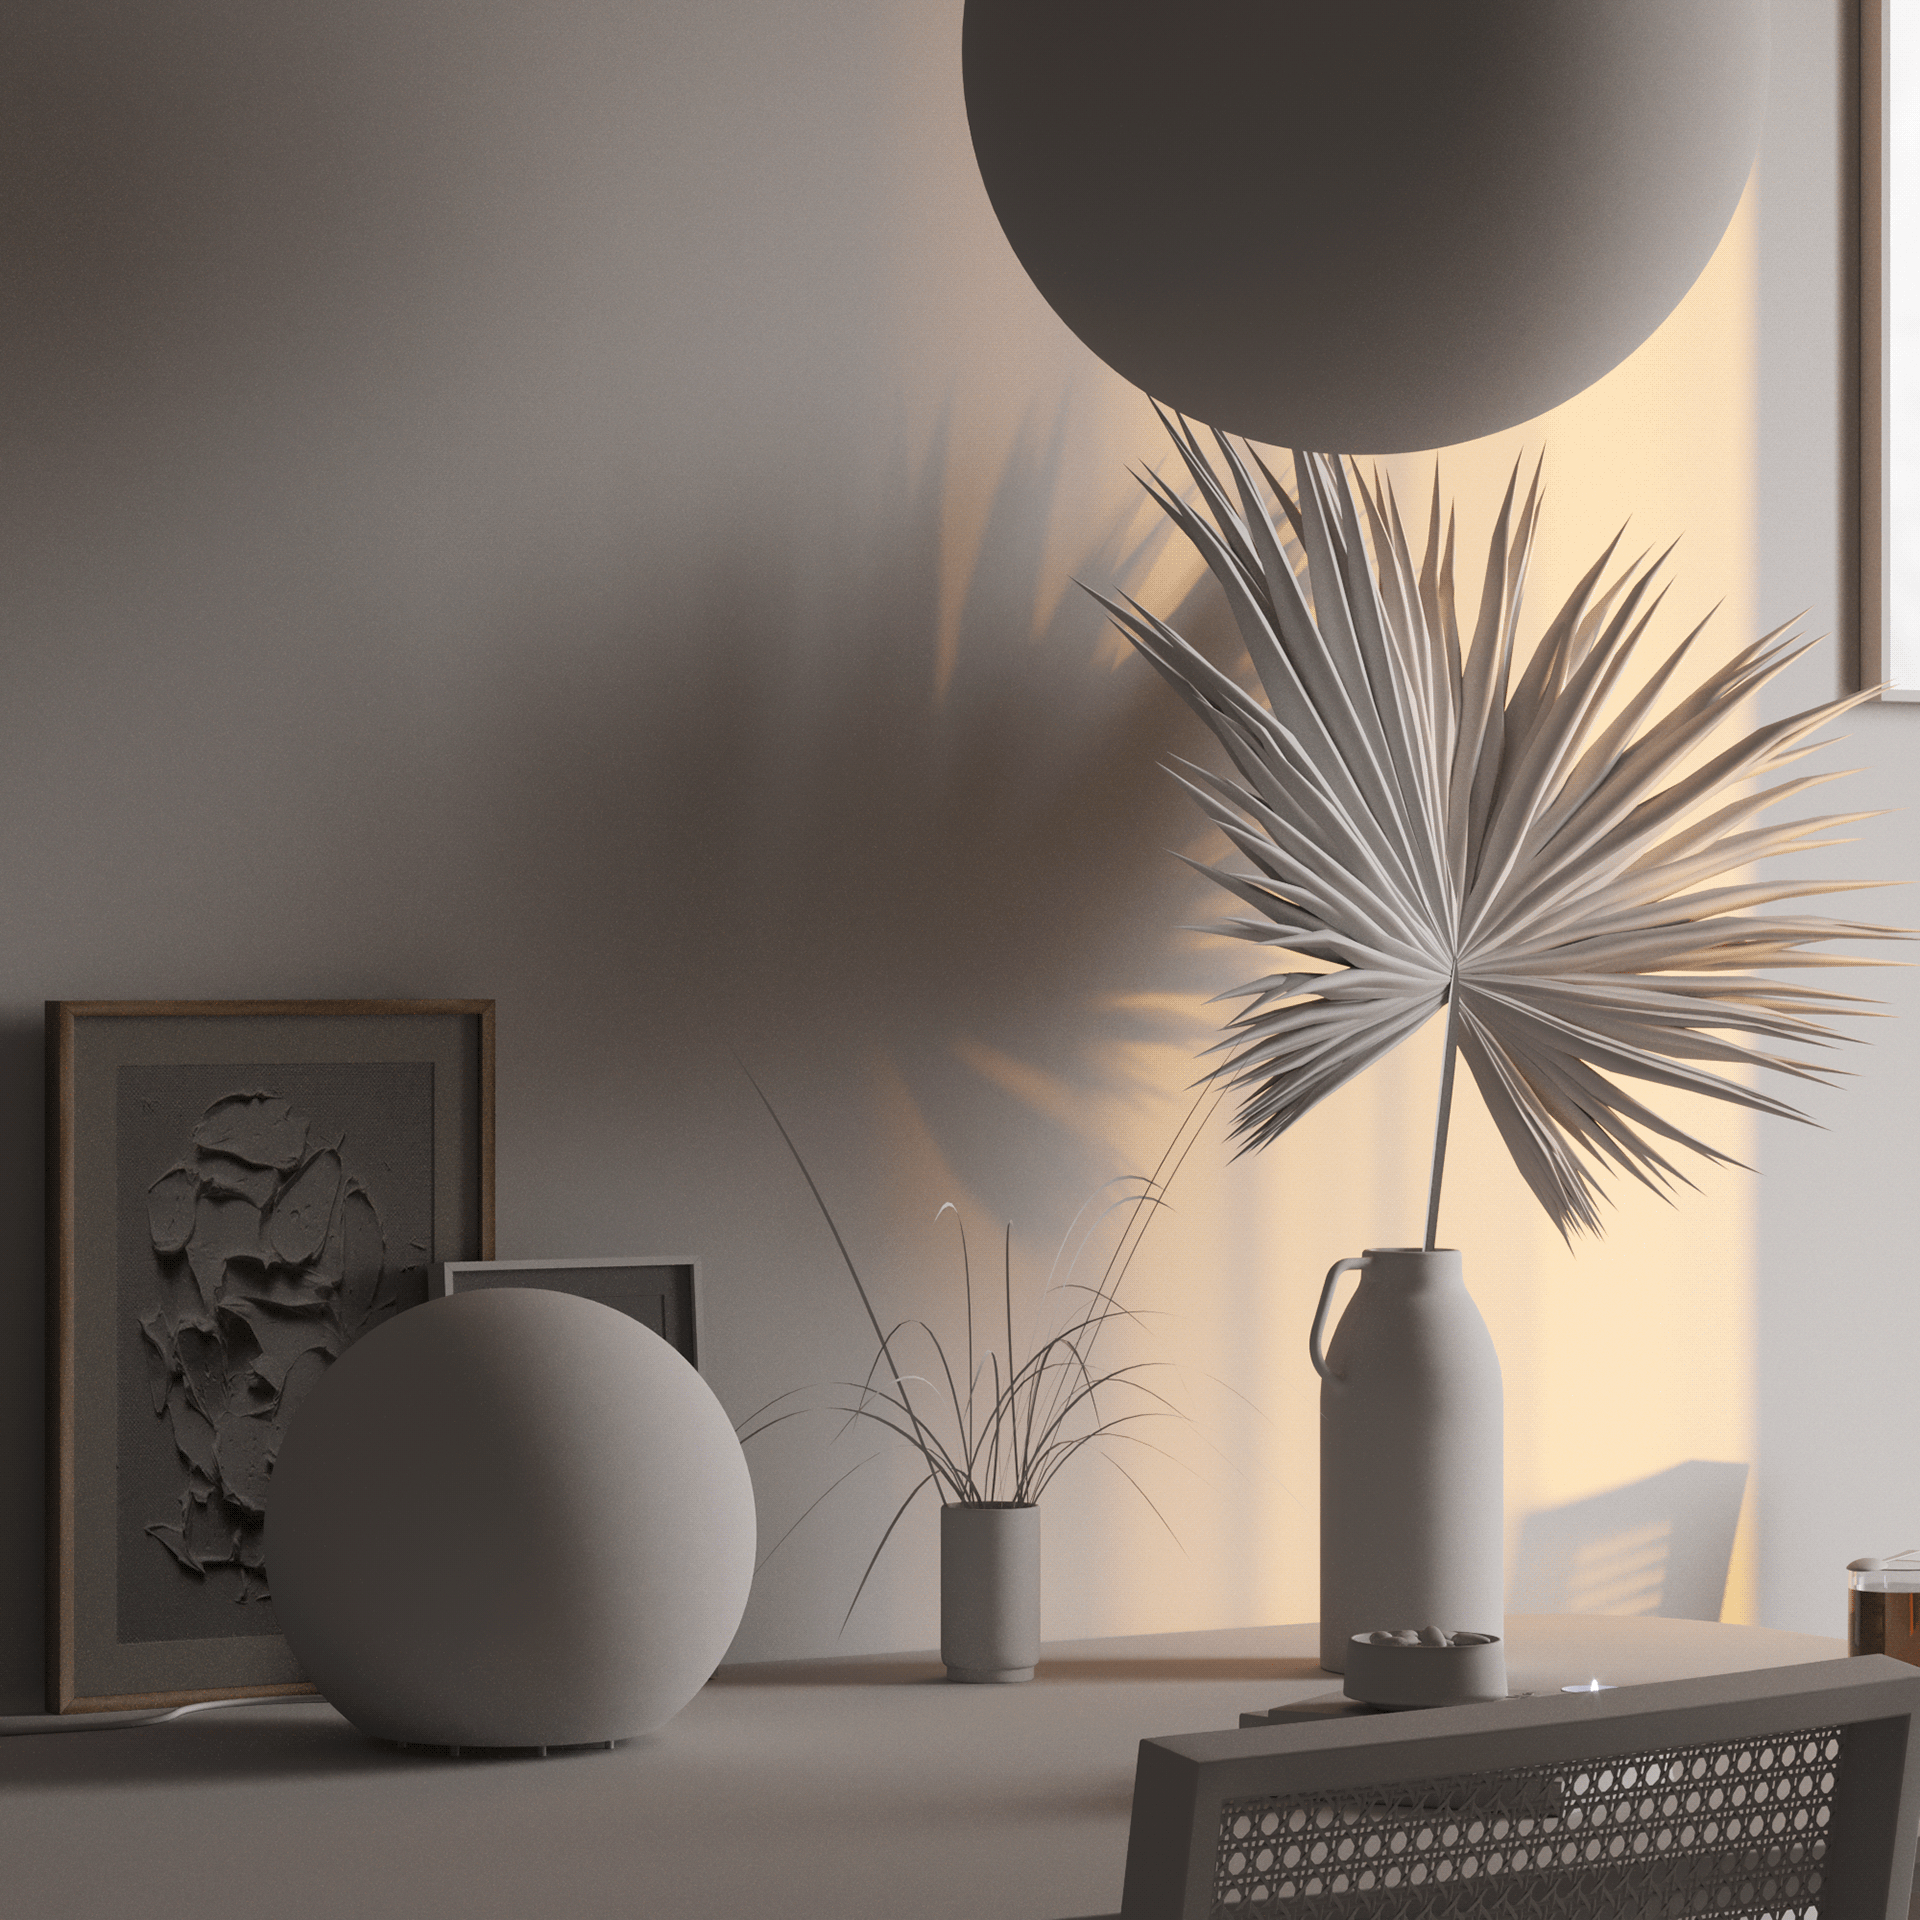 Sunset shoot wood table plants shadow - cgi visualization